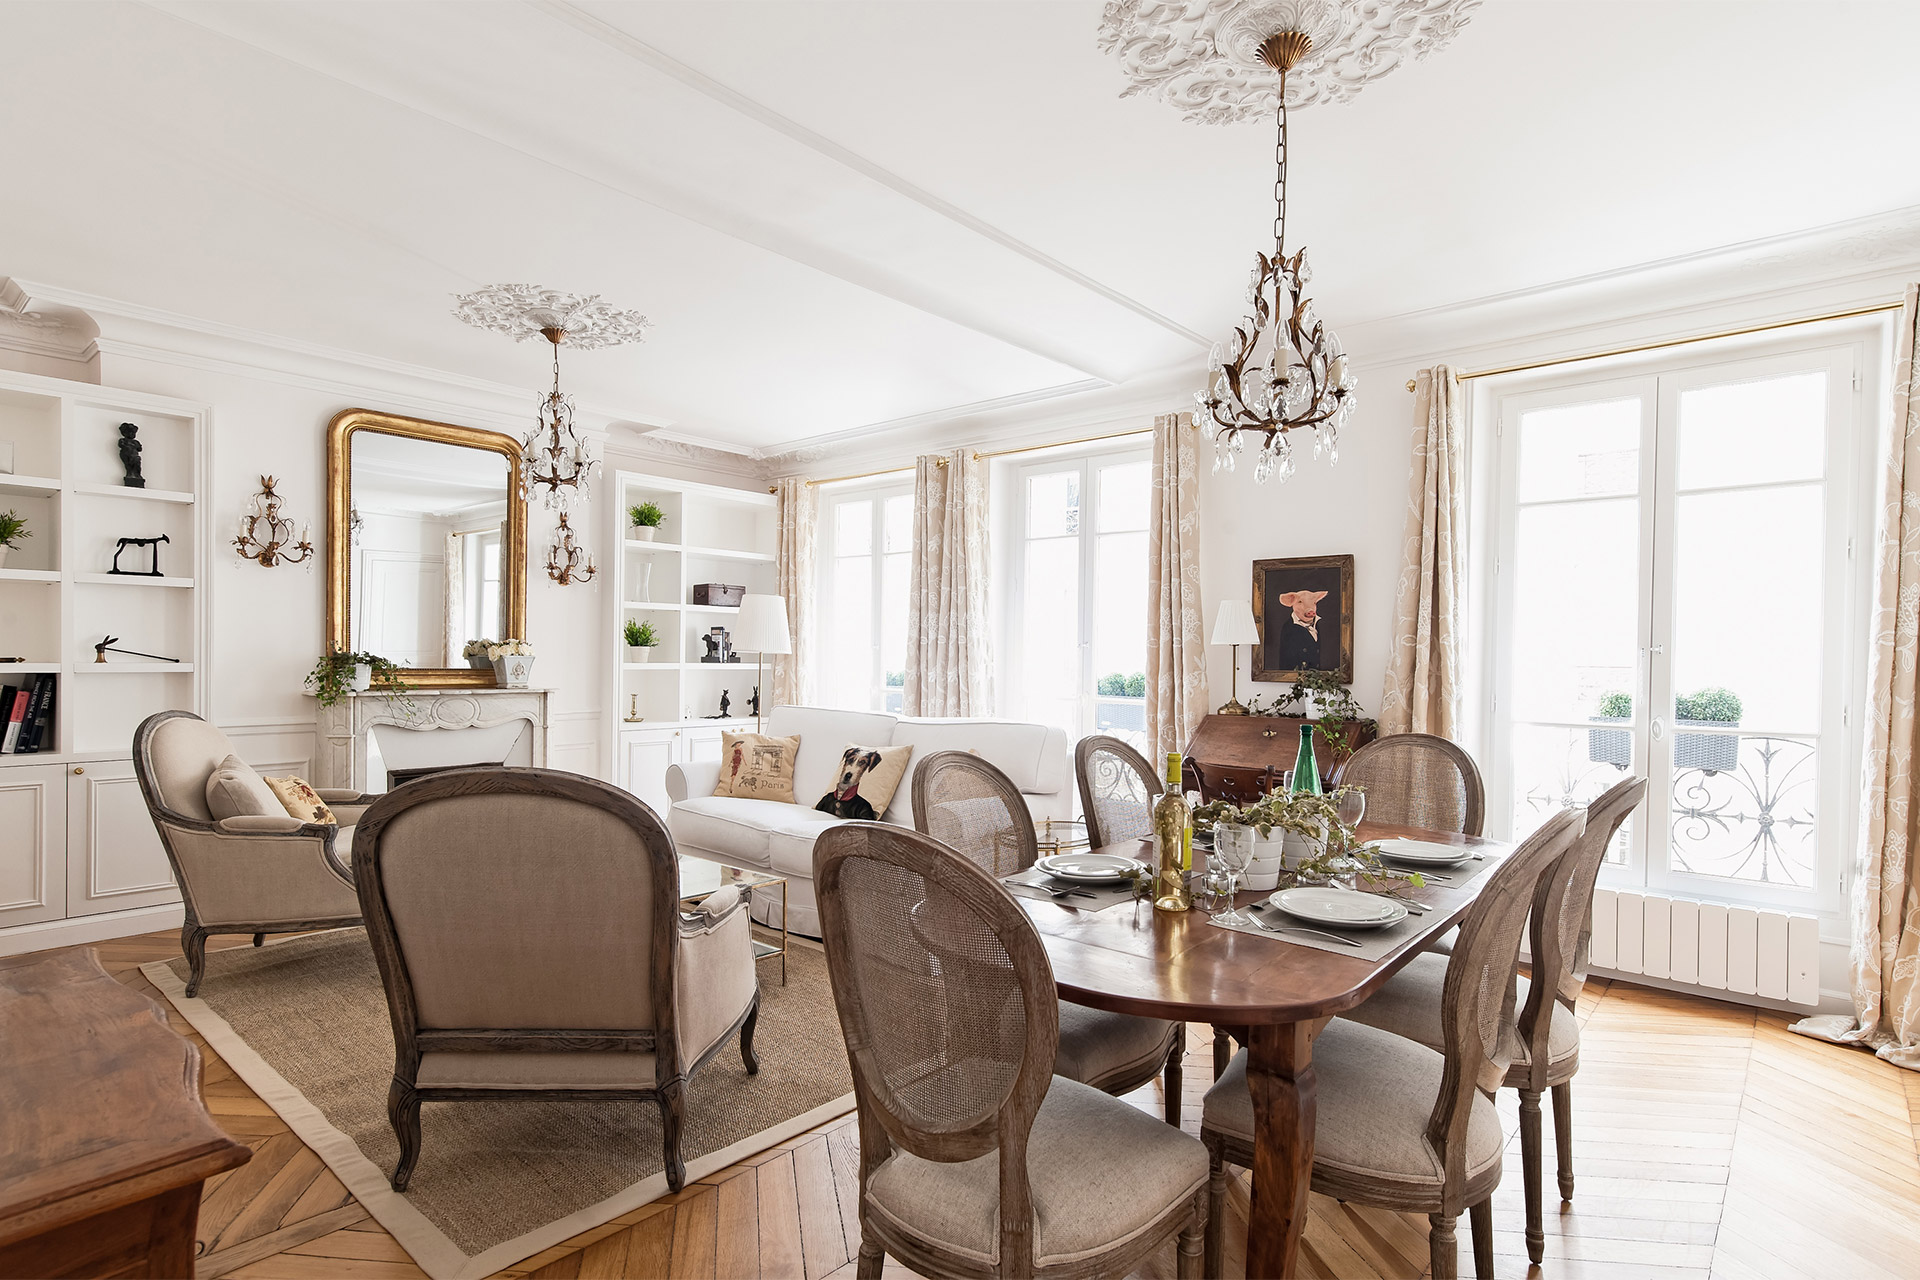 Wooden furnishings and crystal chandeliers in the Montagny vacation rental offered by Paris Perfect